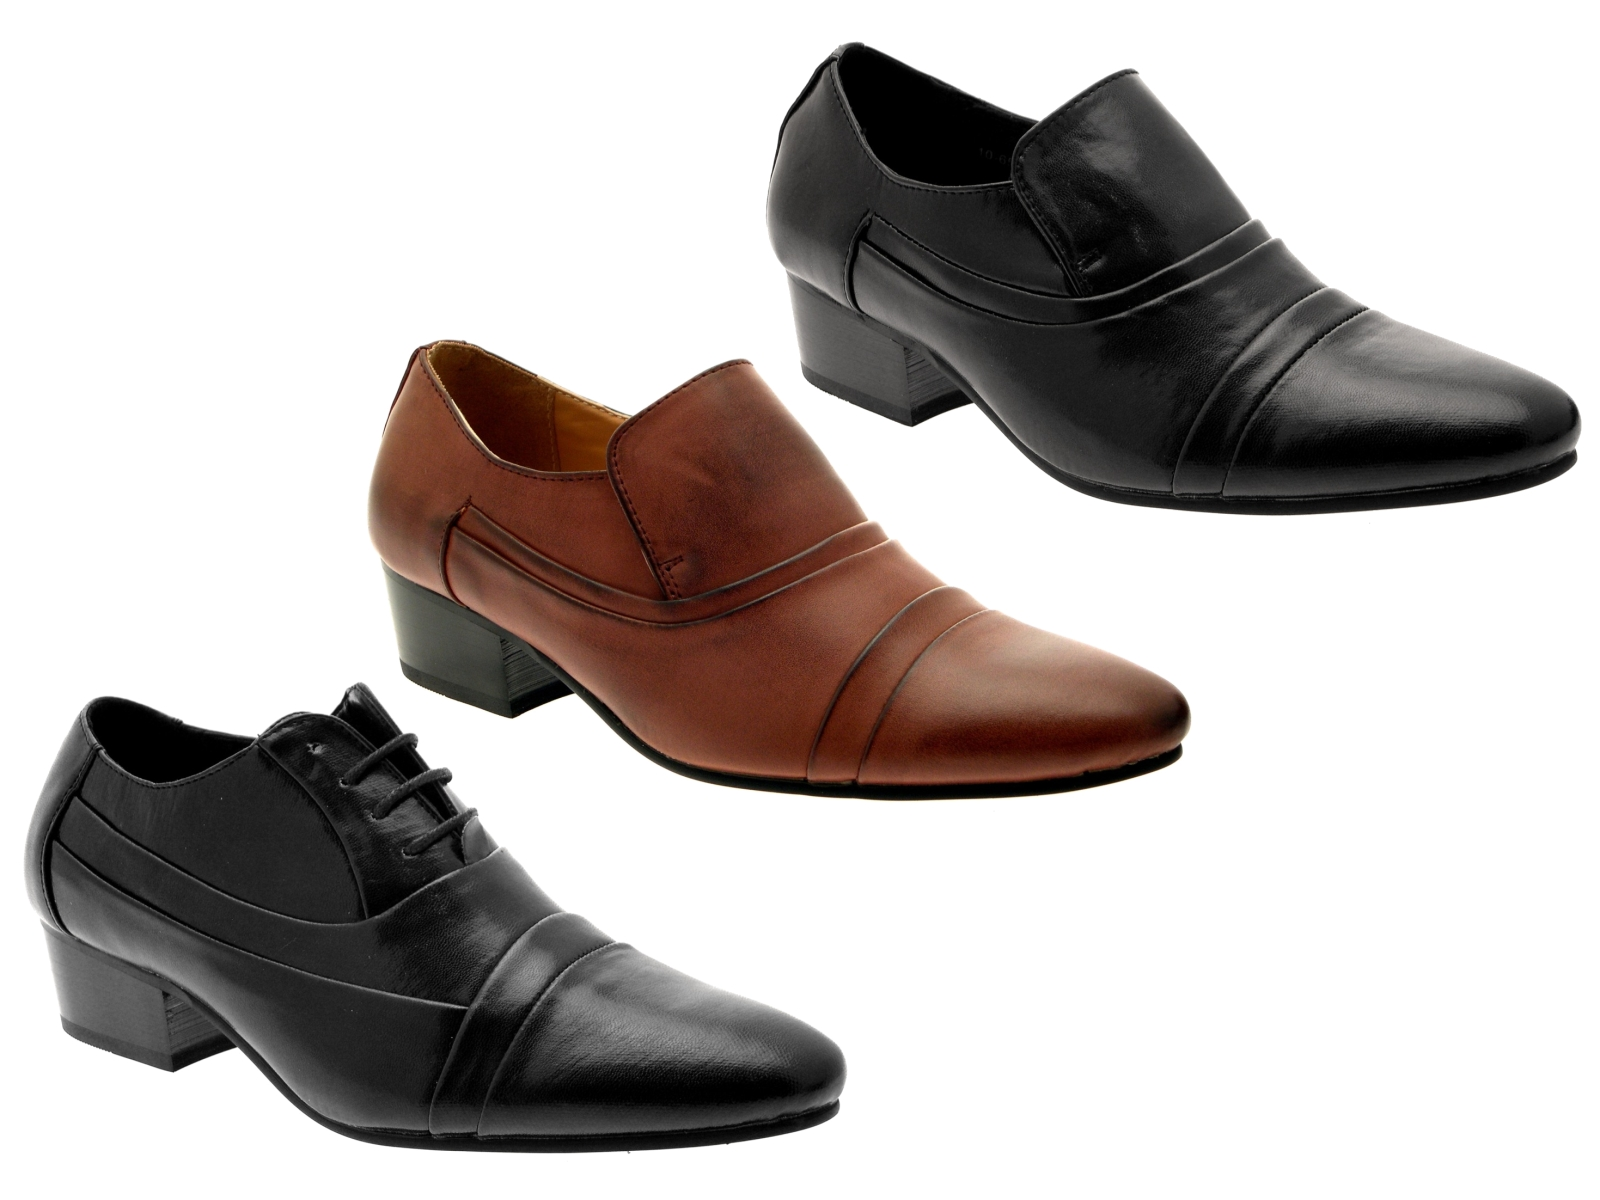 office shoes mens-smart-cuban-heels-formal-wedding-office-shoes- CNAQCRY